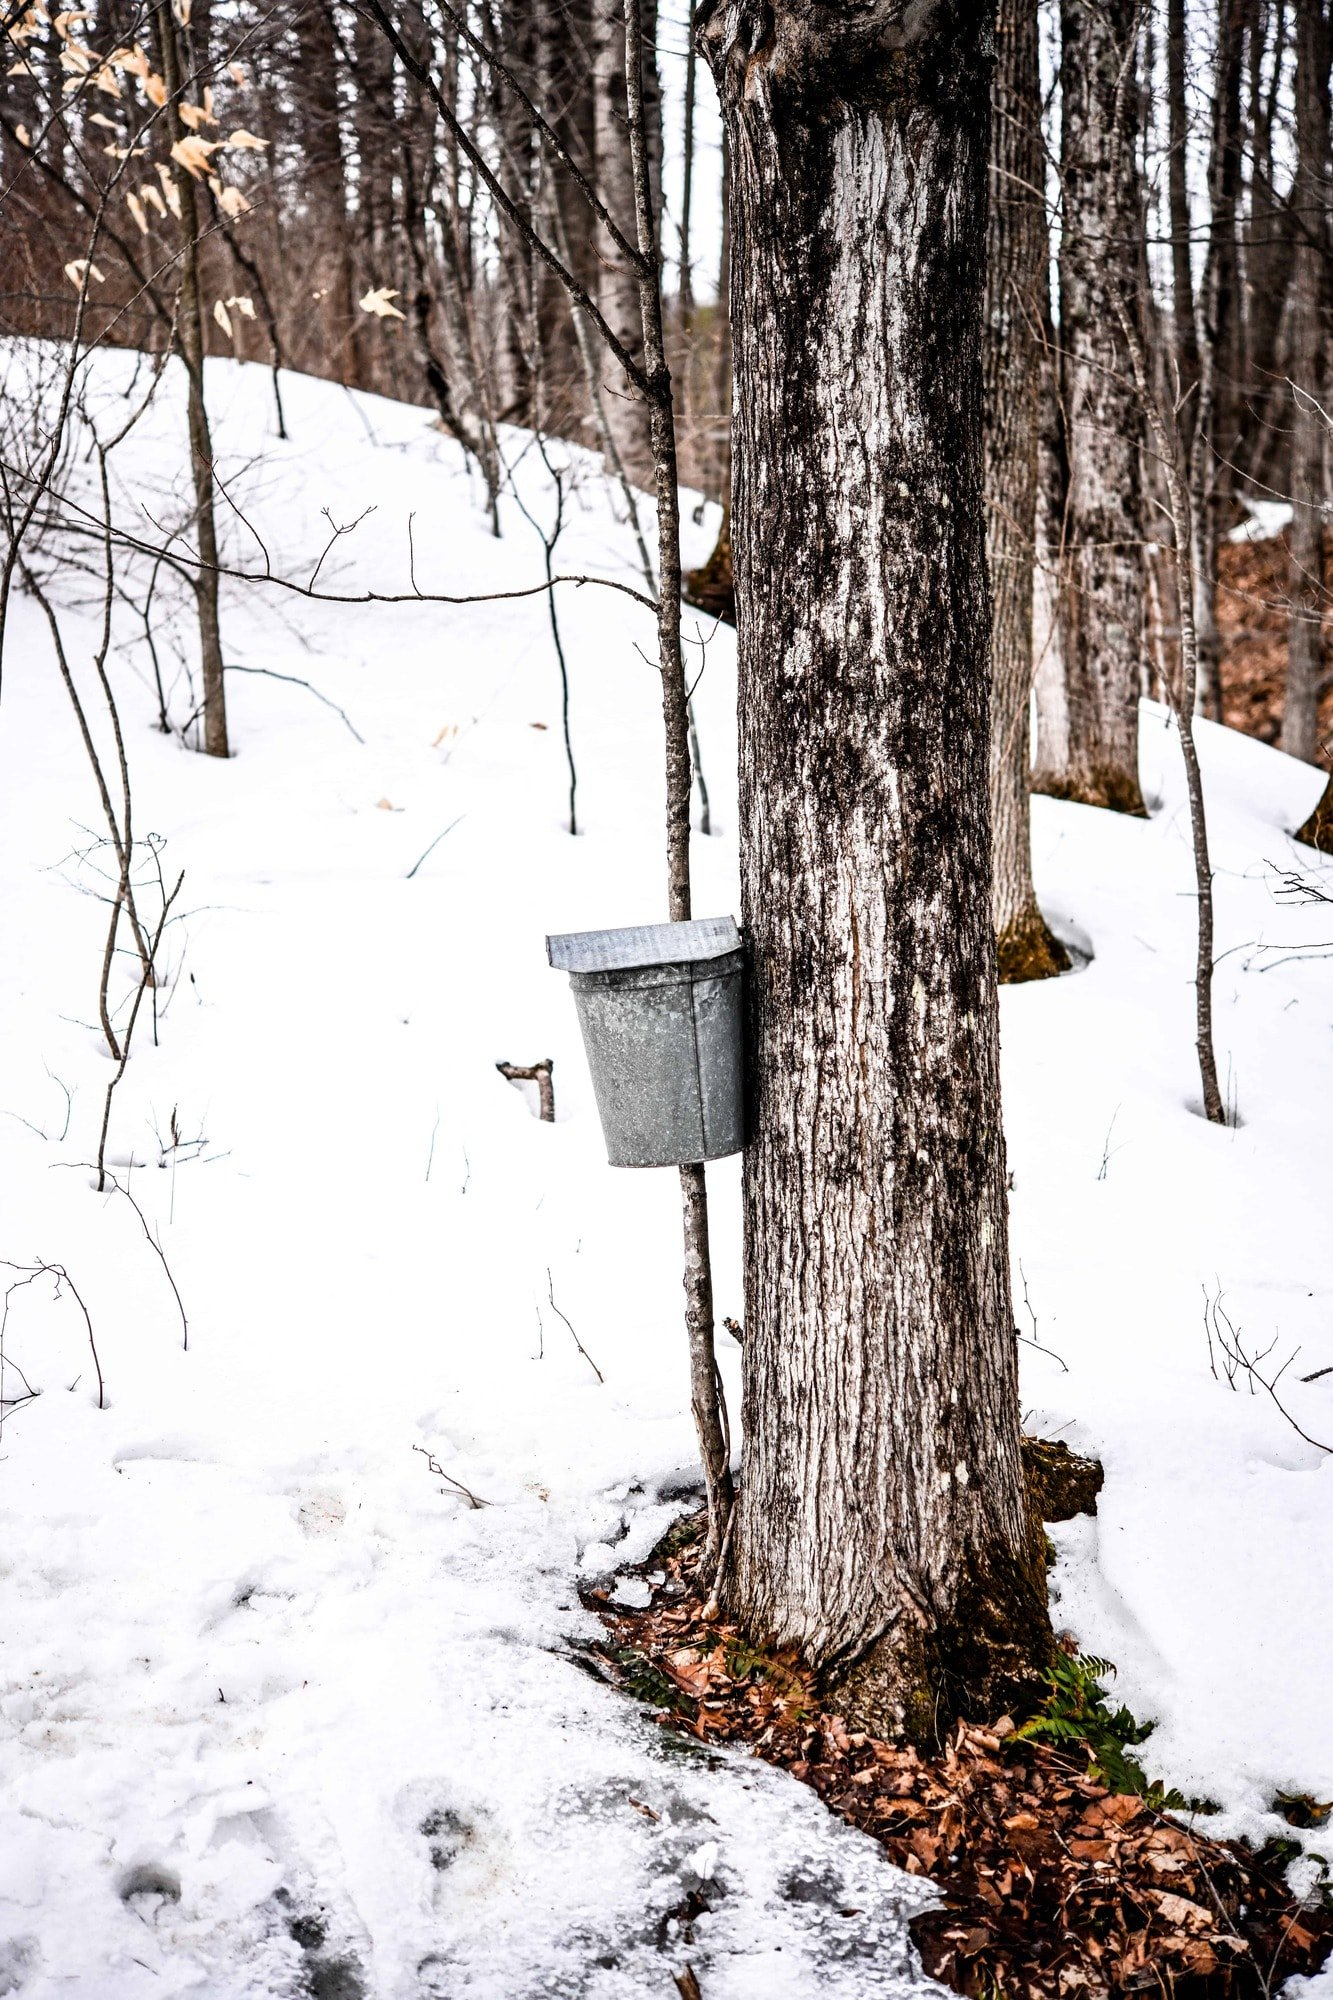 A maple tree tapped in winter